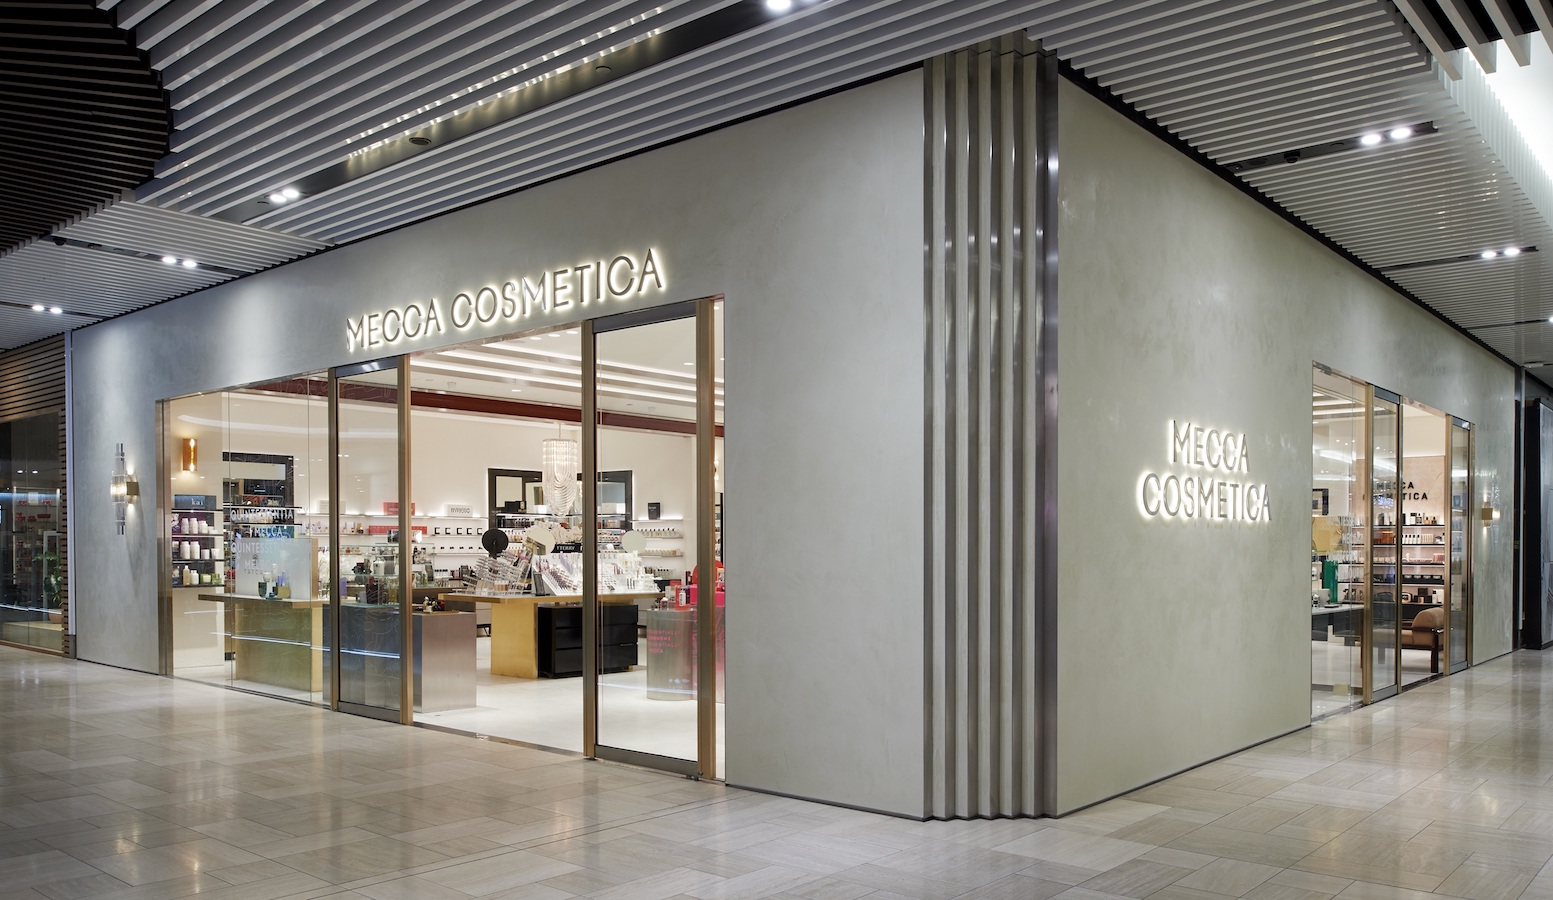 Mecca Cosmetica's huge new Melbourne CBD store is now open